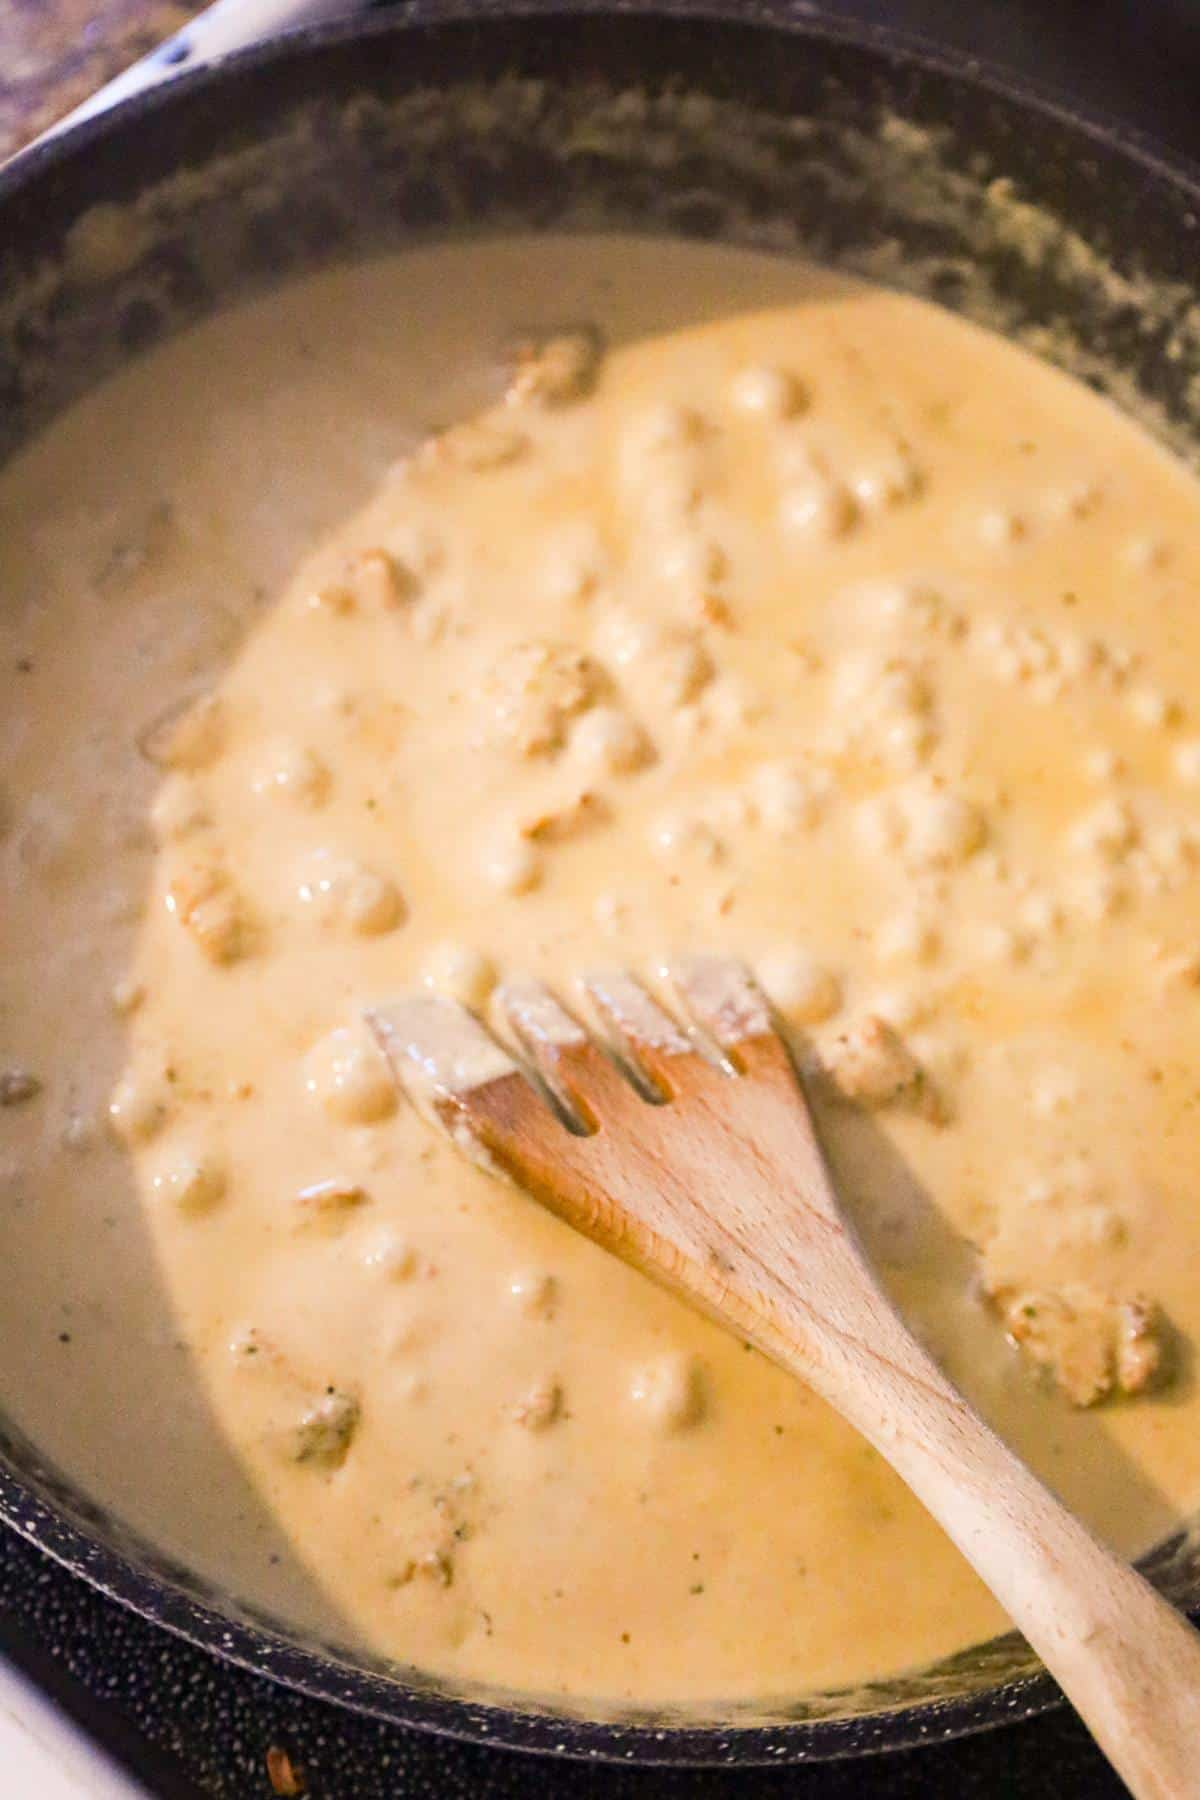 creamy cajun sauce cooking in a saute pan